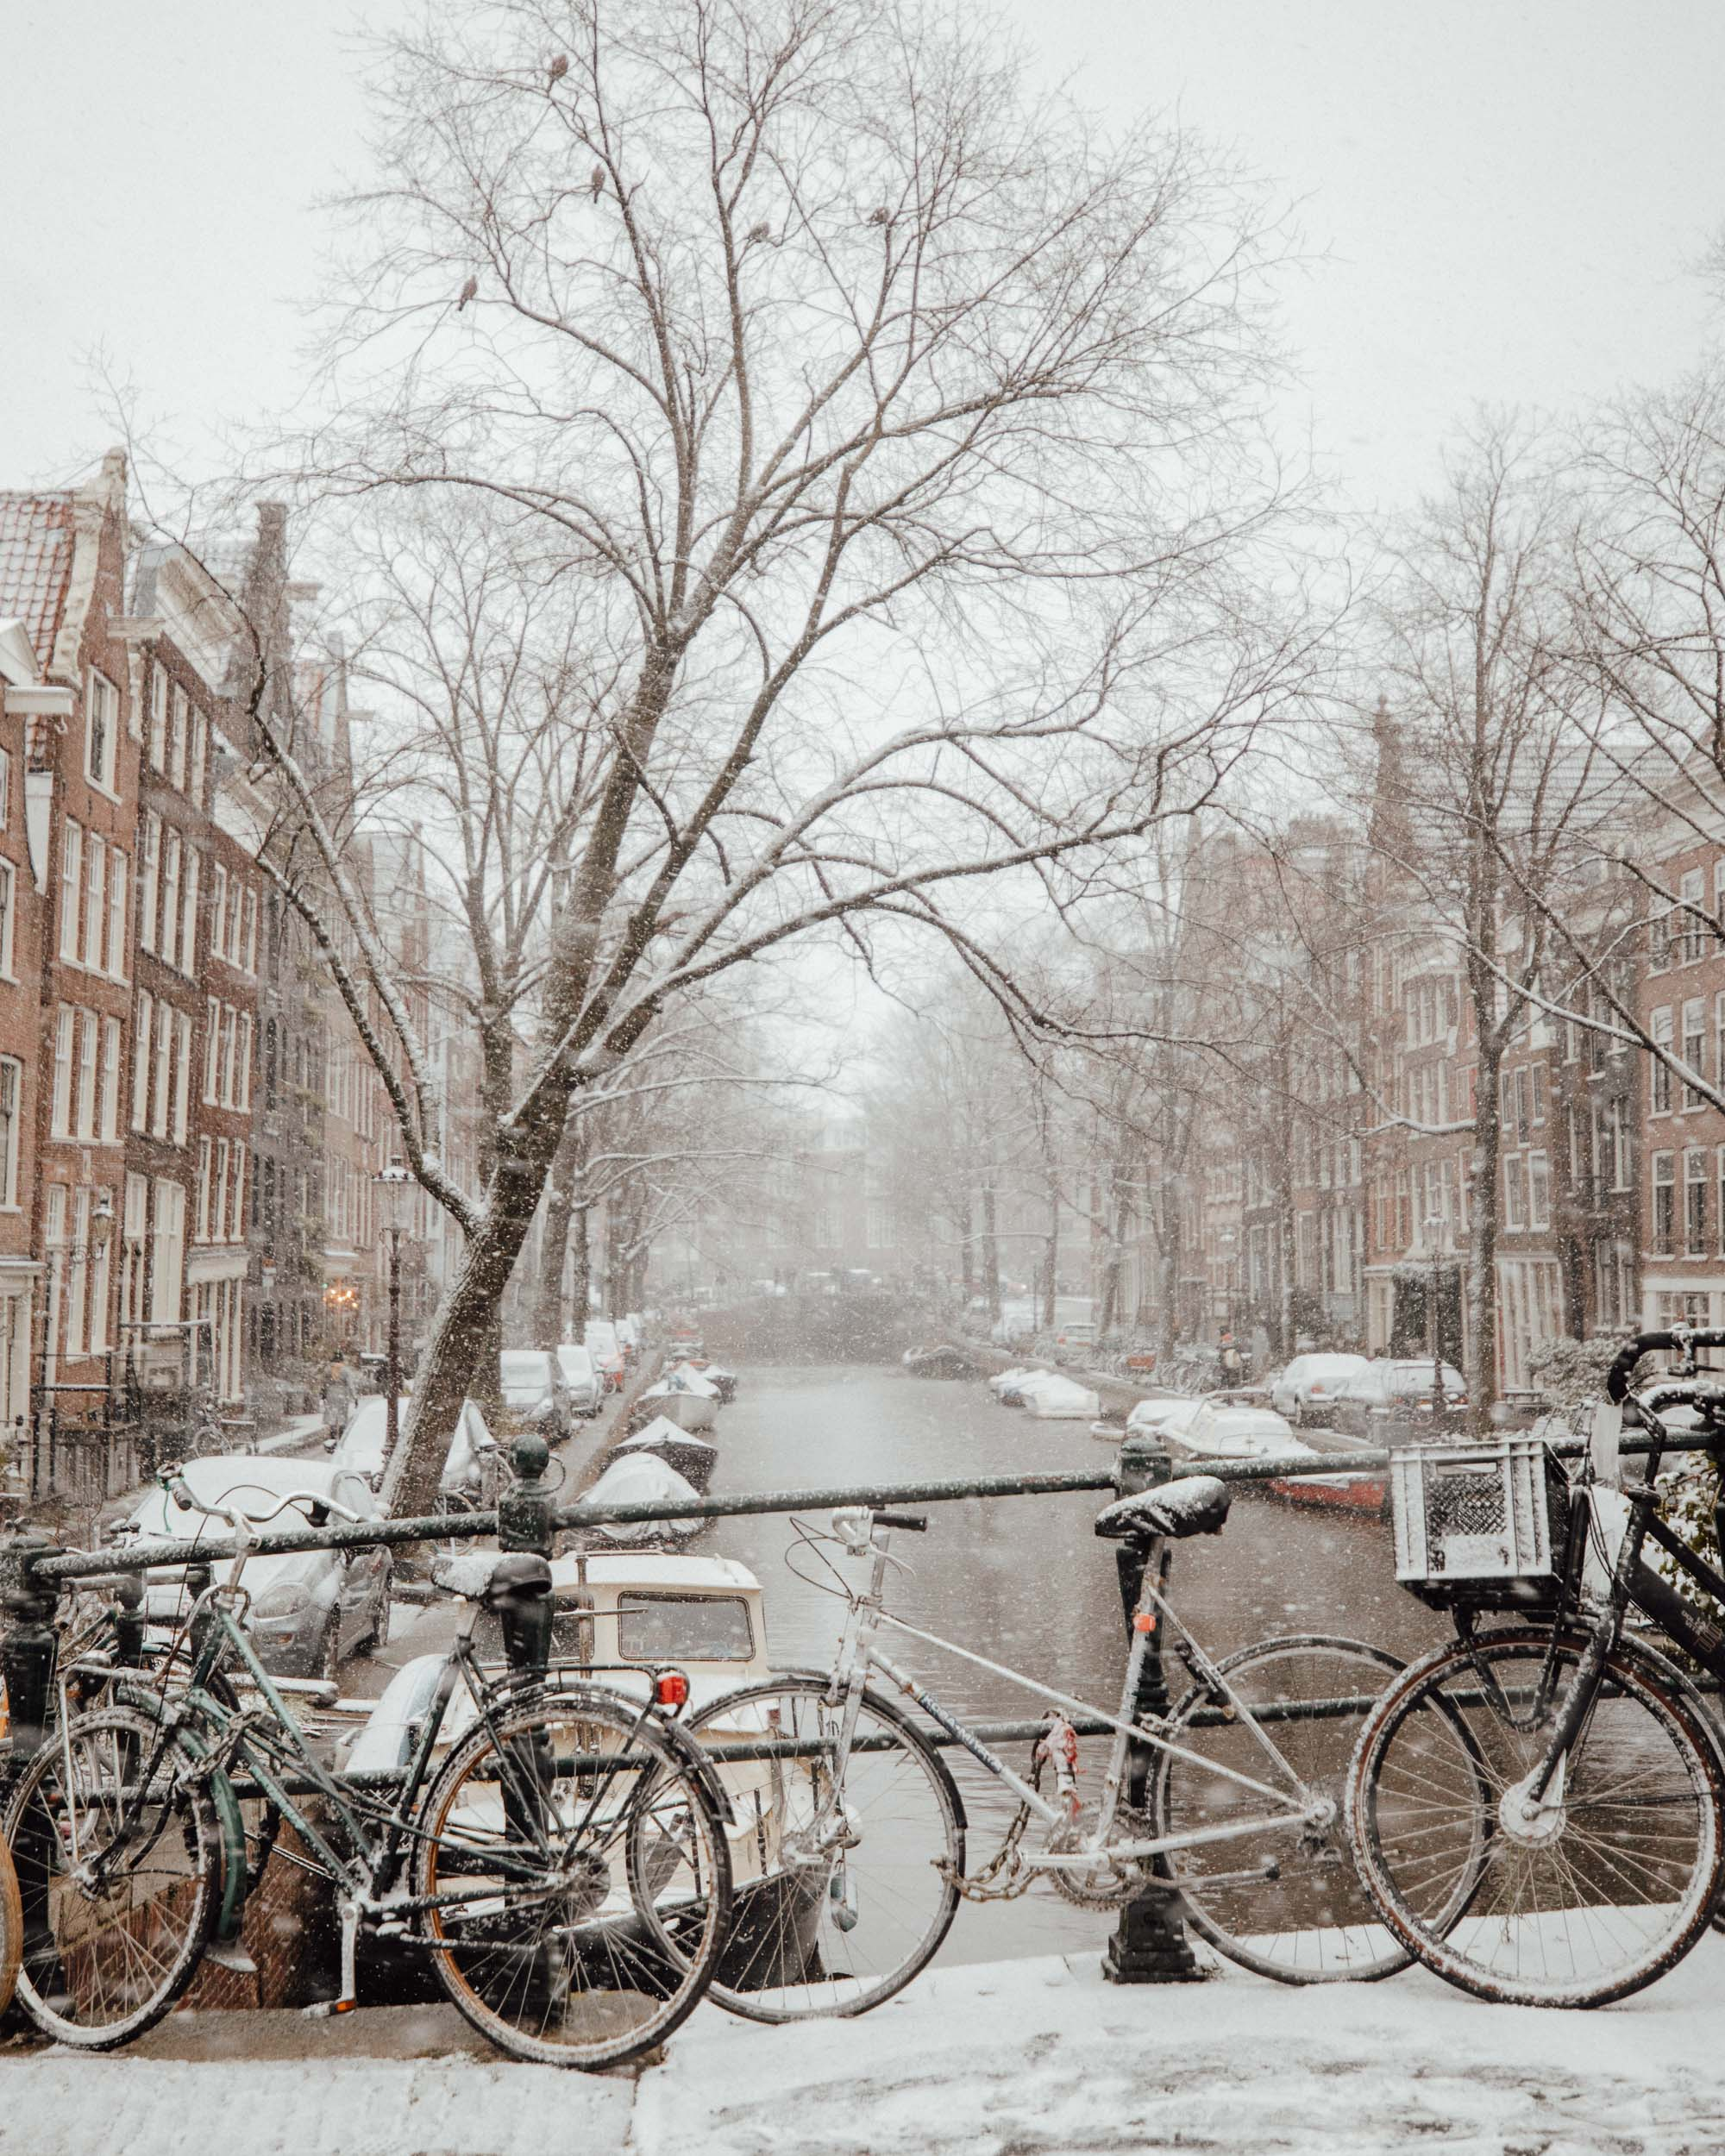 Amsterdam canals in winter with snow